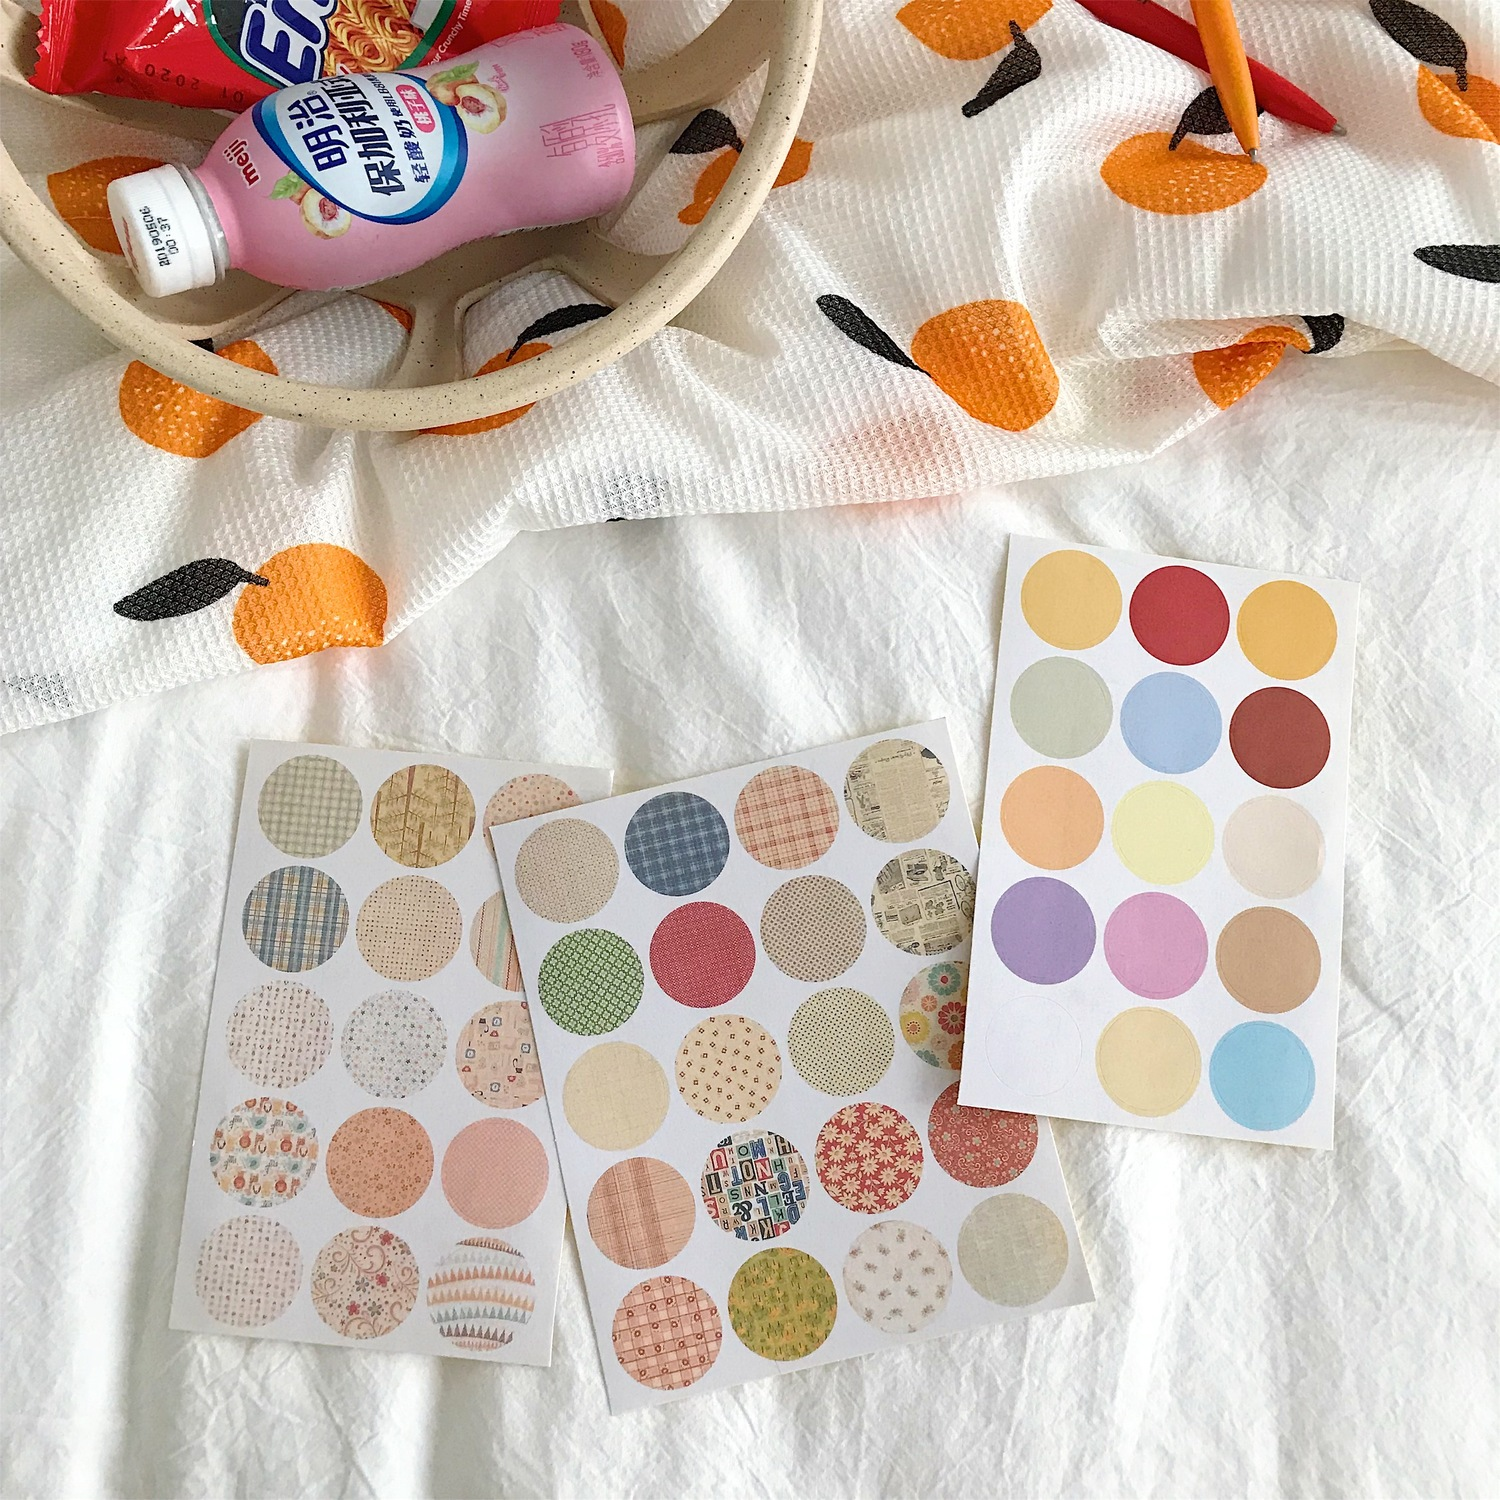 Купить с кэшбэком Ins 9 Pc Cute Circle Point Decoration Sticker Sets Student Notebook Hand Account Sealing Stickers Label Sticker Korea Stationery